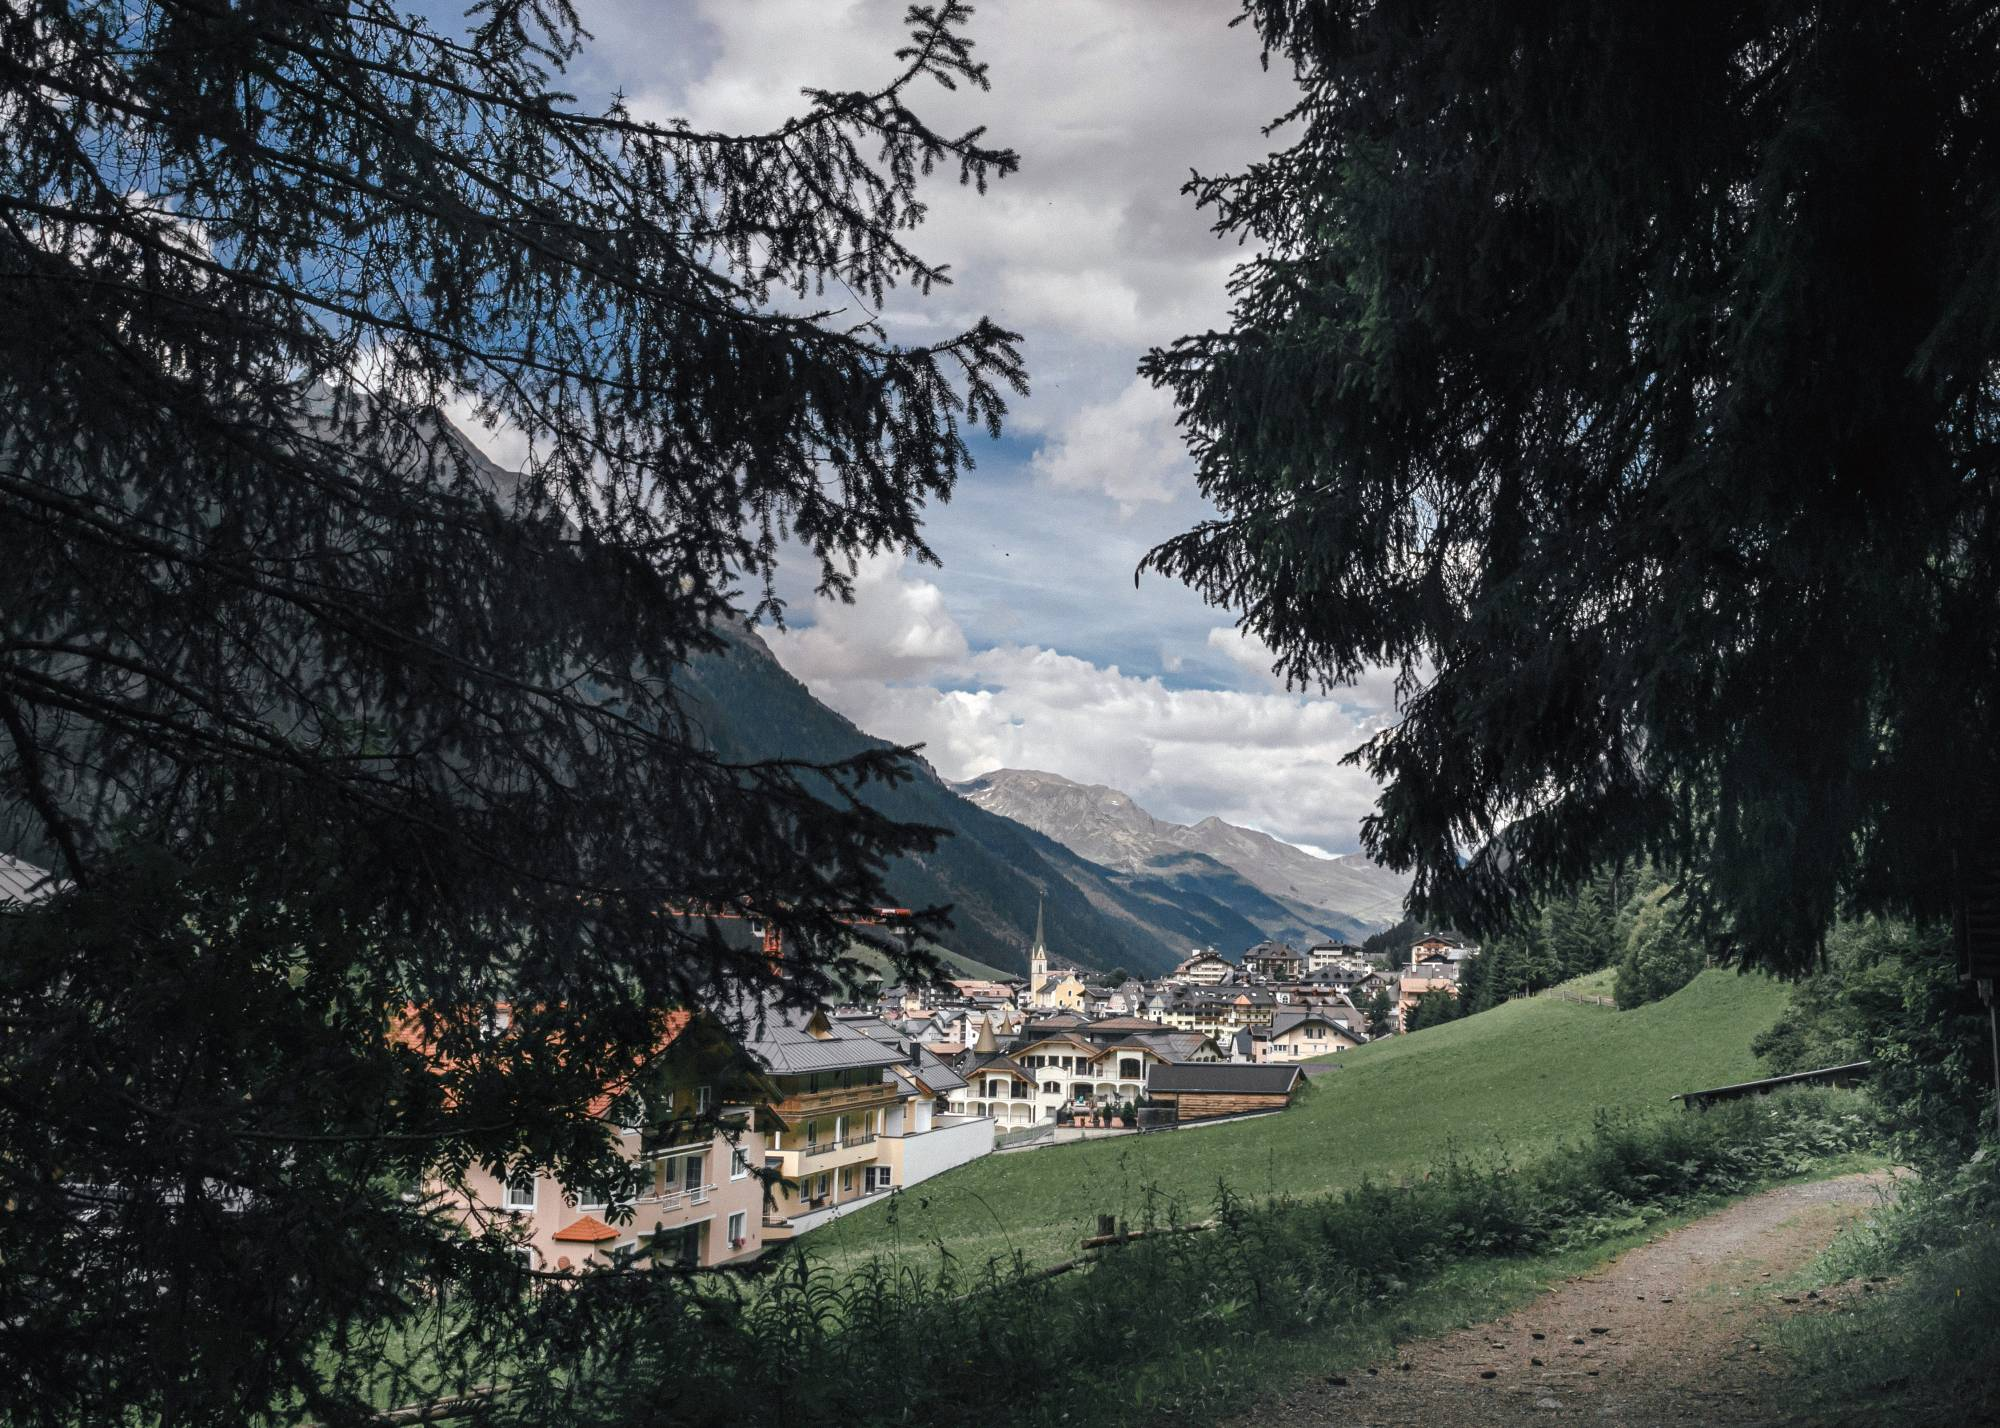 The village of Ischgl, Austria, the gateway to one of Tyrol's most popular ski resorts | ANDREA MANTOVANI / THE NEW YORK TIMES